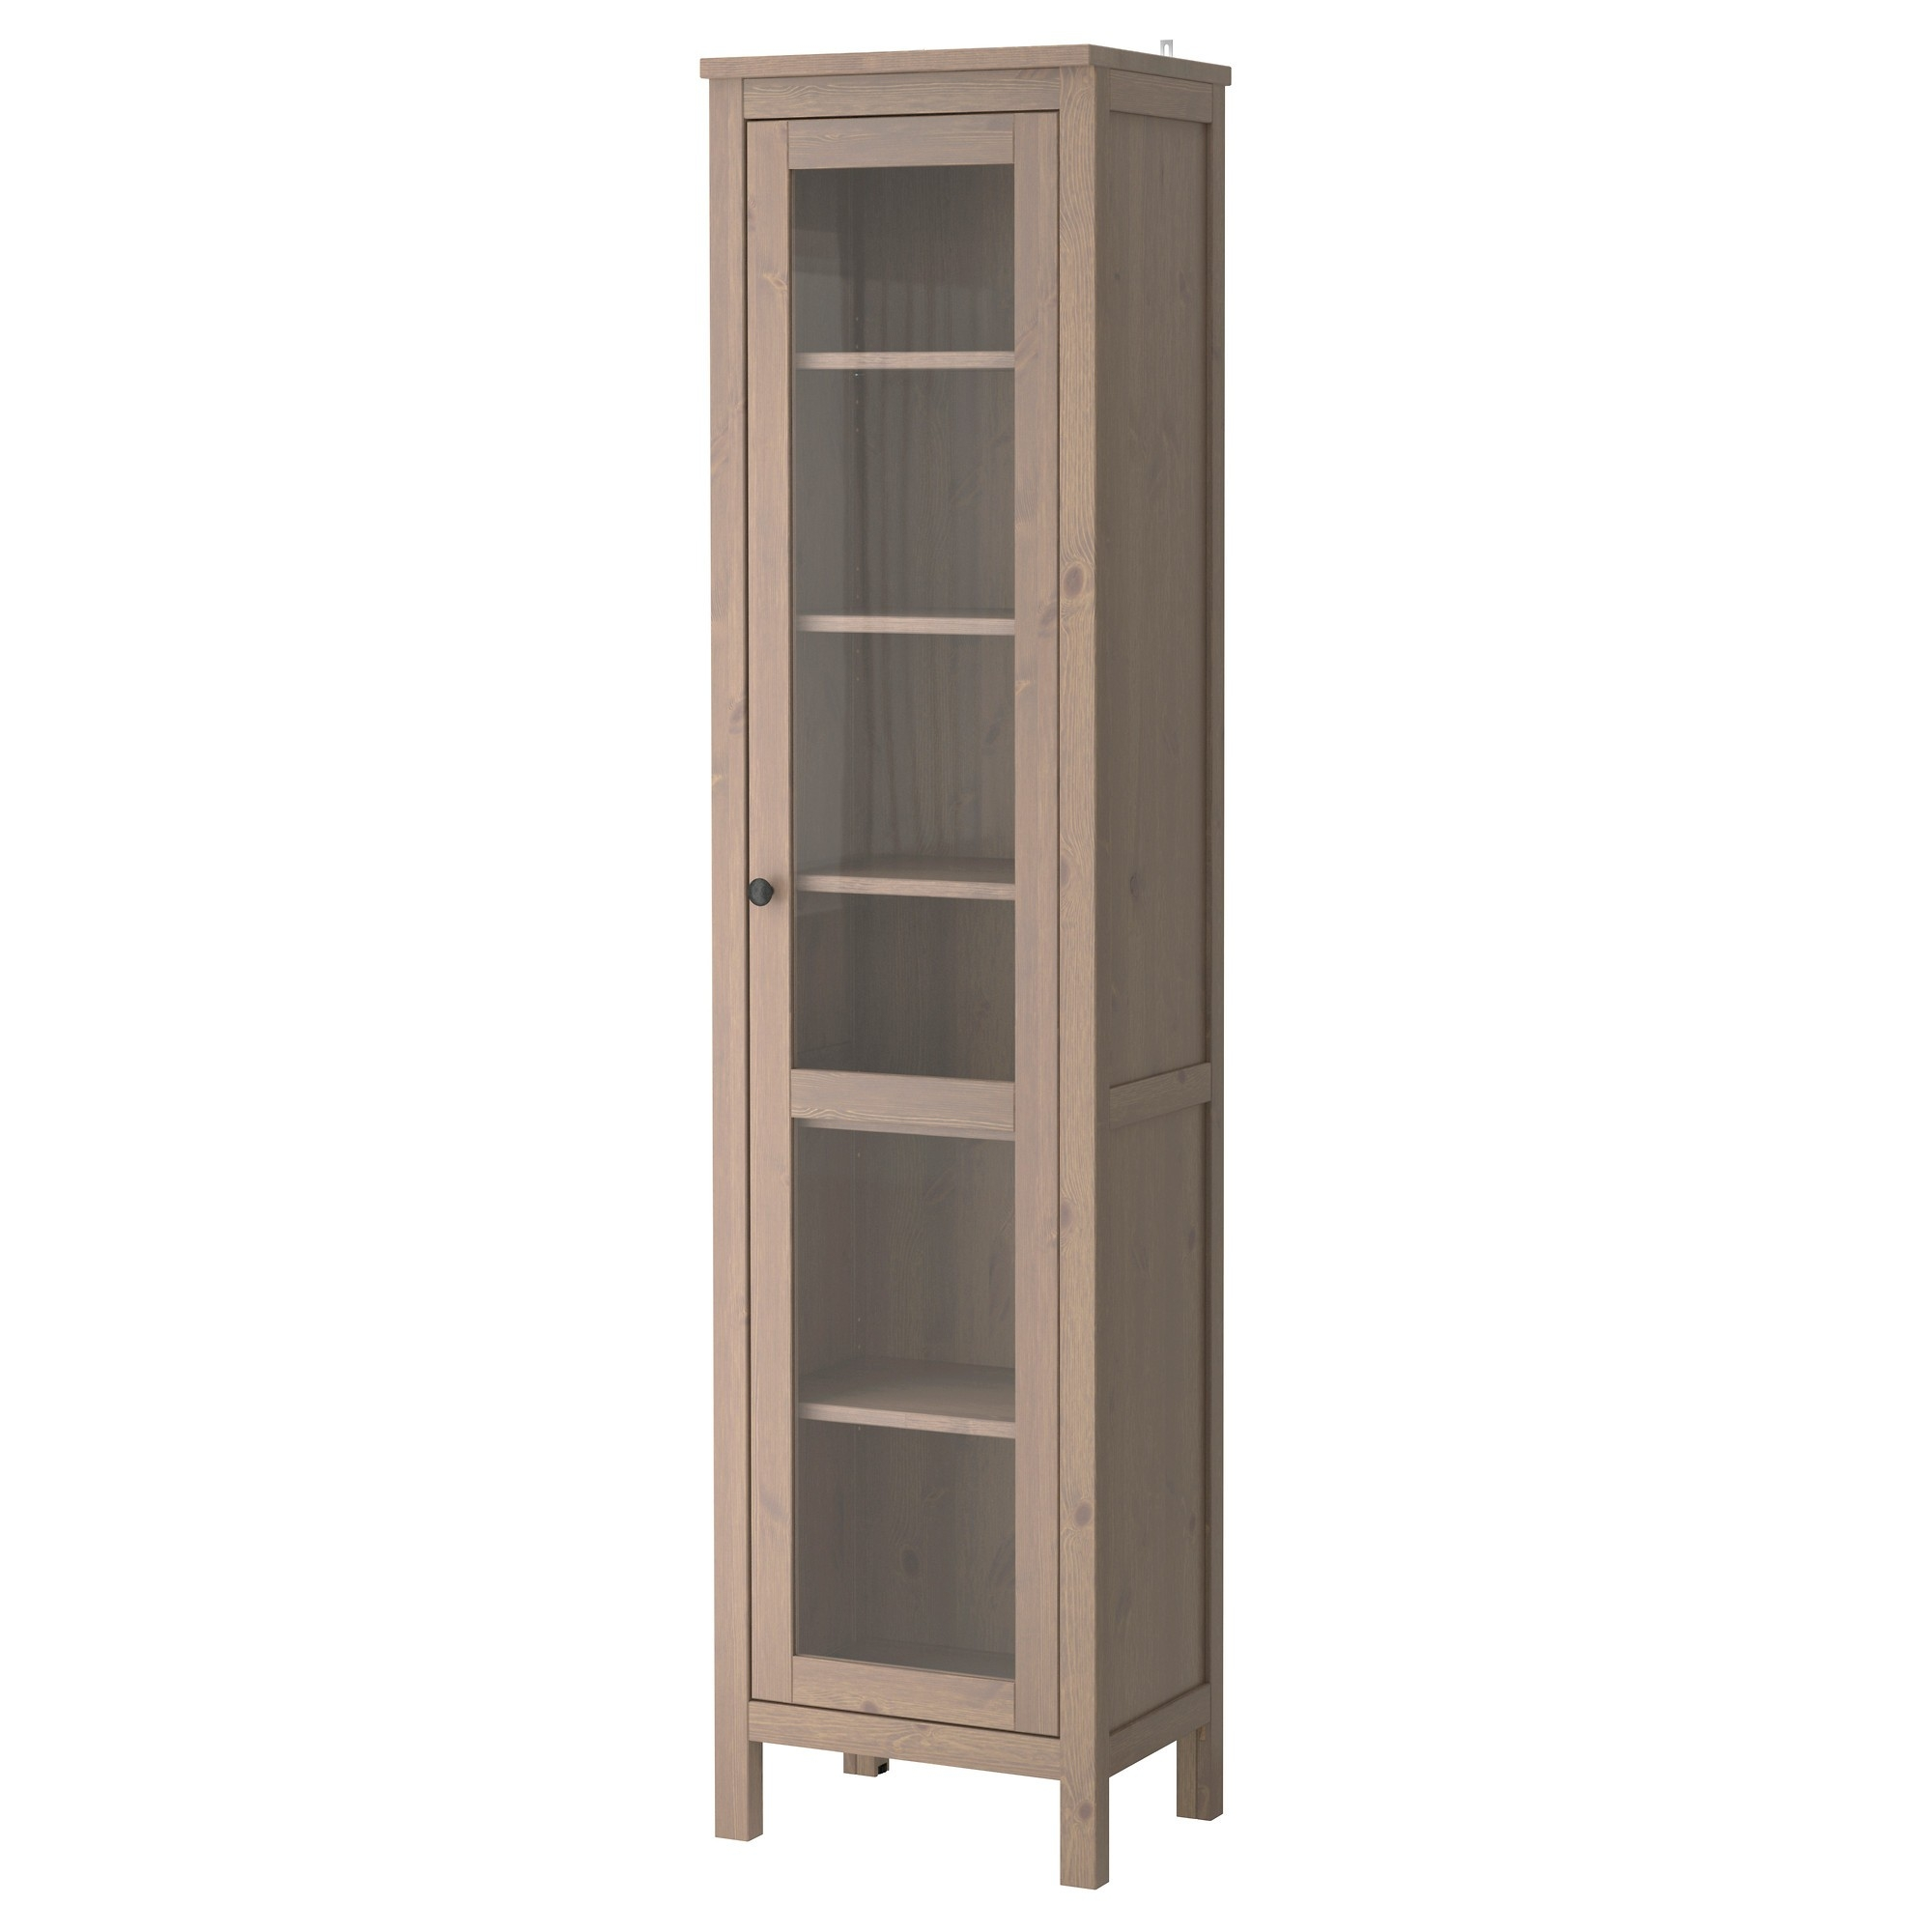 Tall Wood Storage Cabinets With Glass Doors